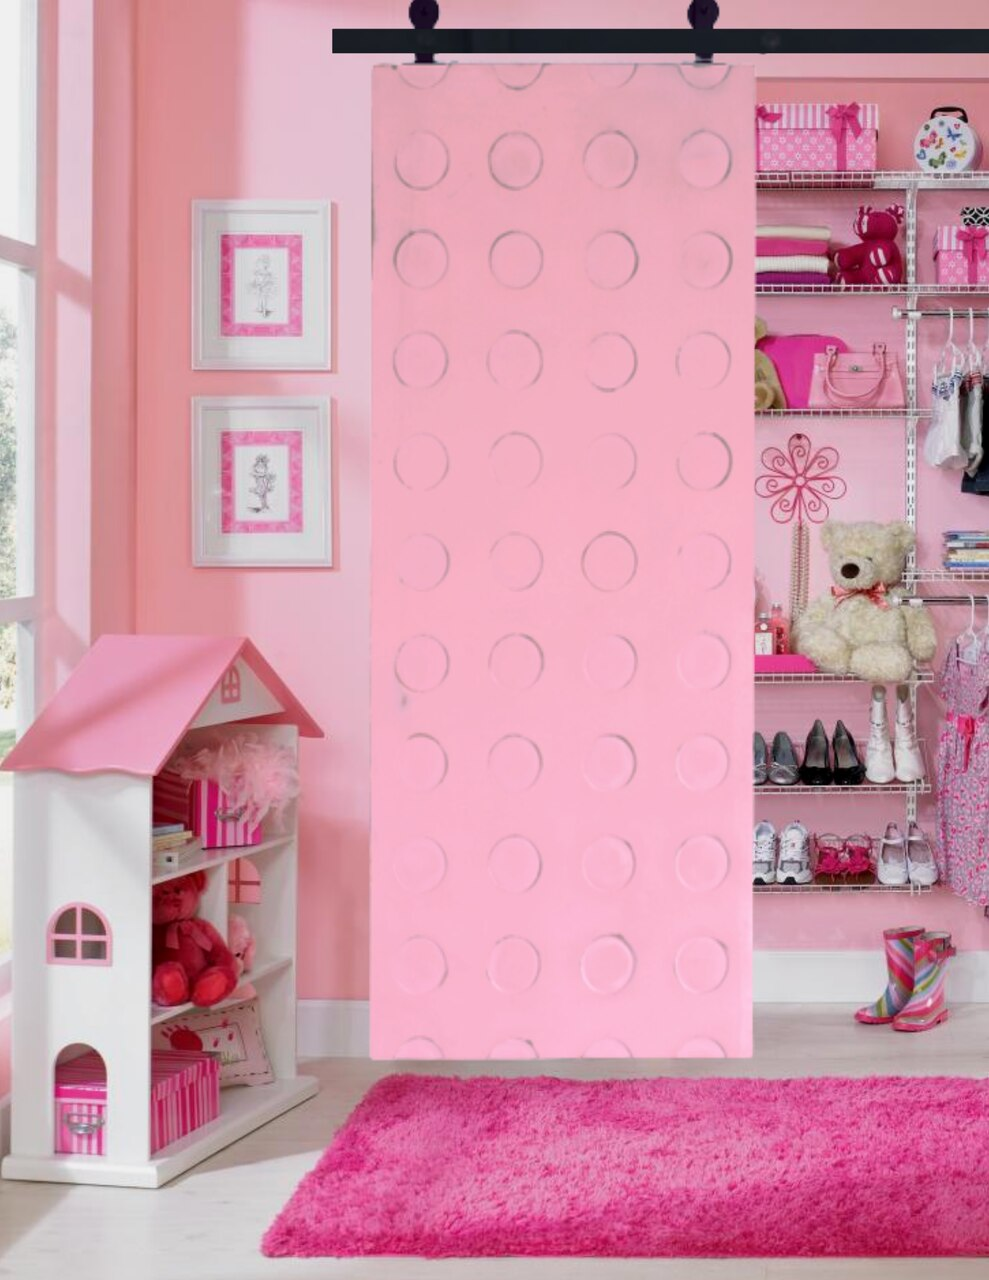 Santa Monica Sliding Barn Door in a daughters room filled with major princess vibes